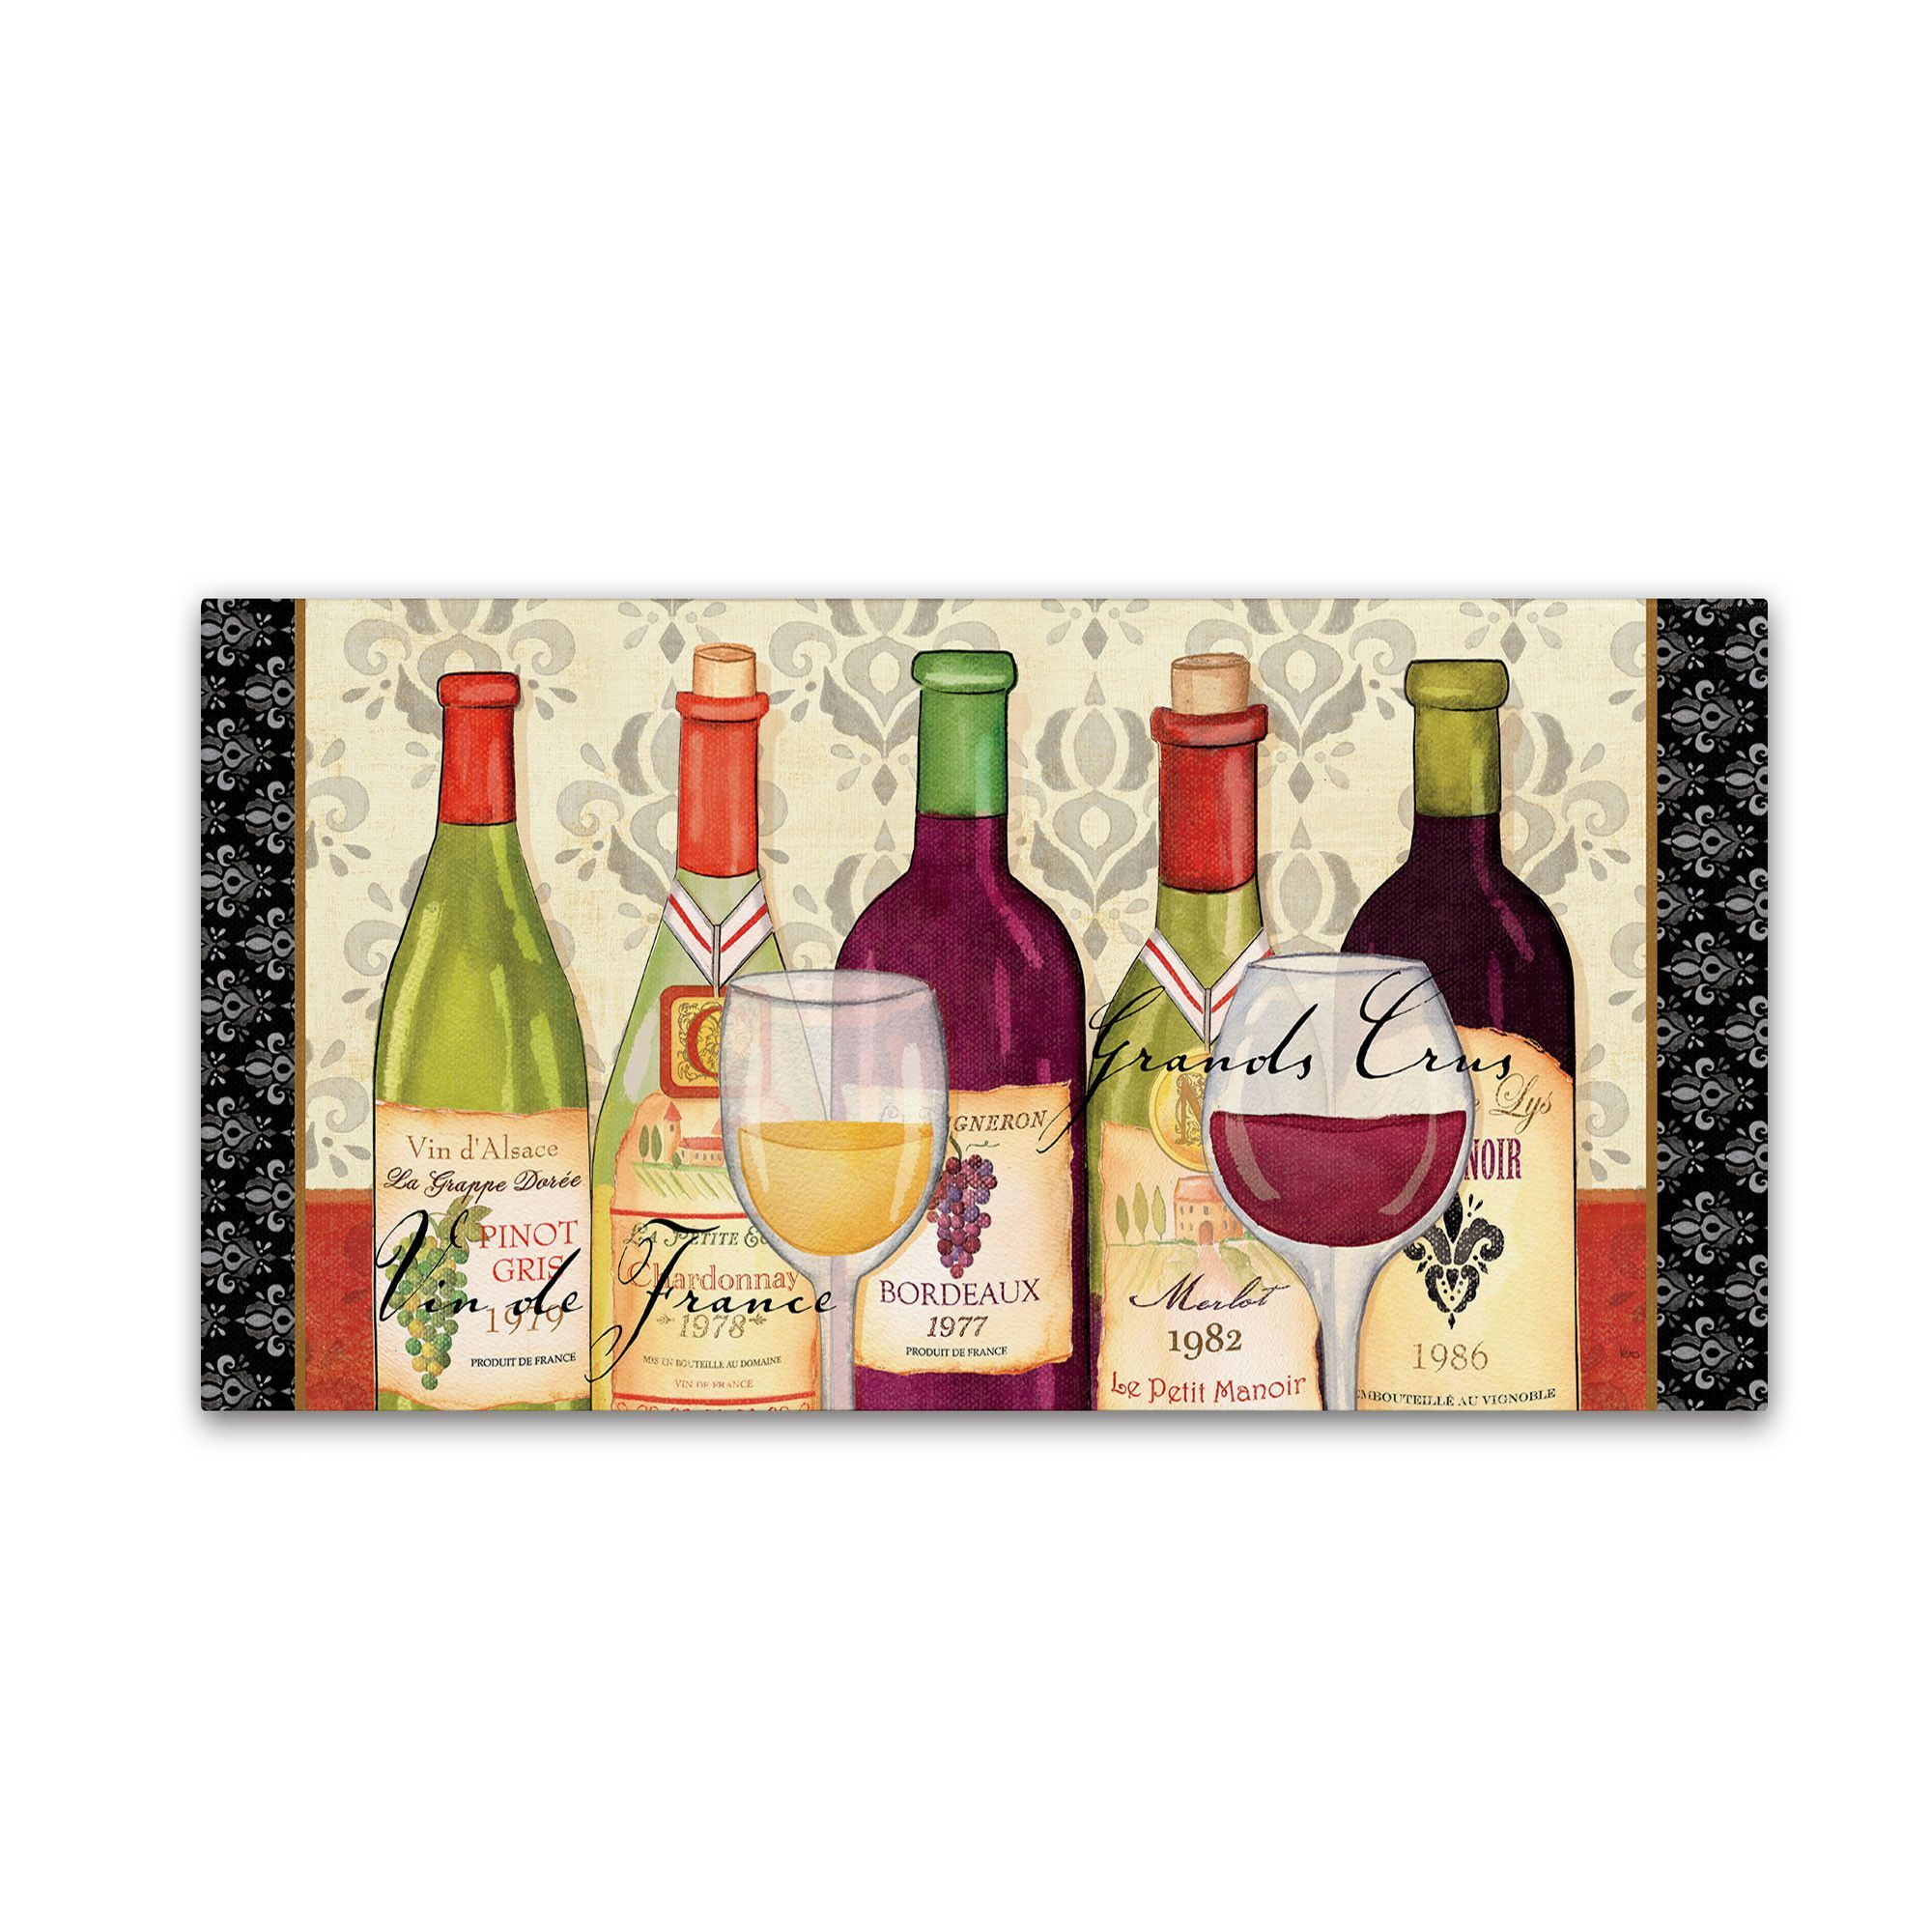 Grand crus by veronique charron graphic art on wrapped canvas